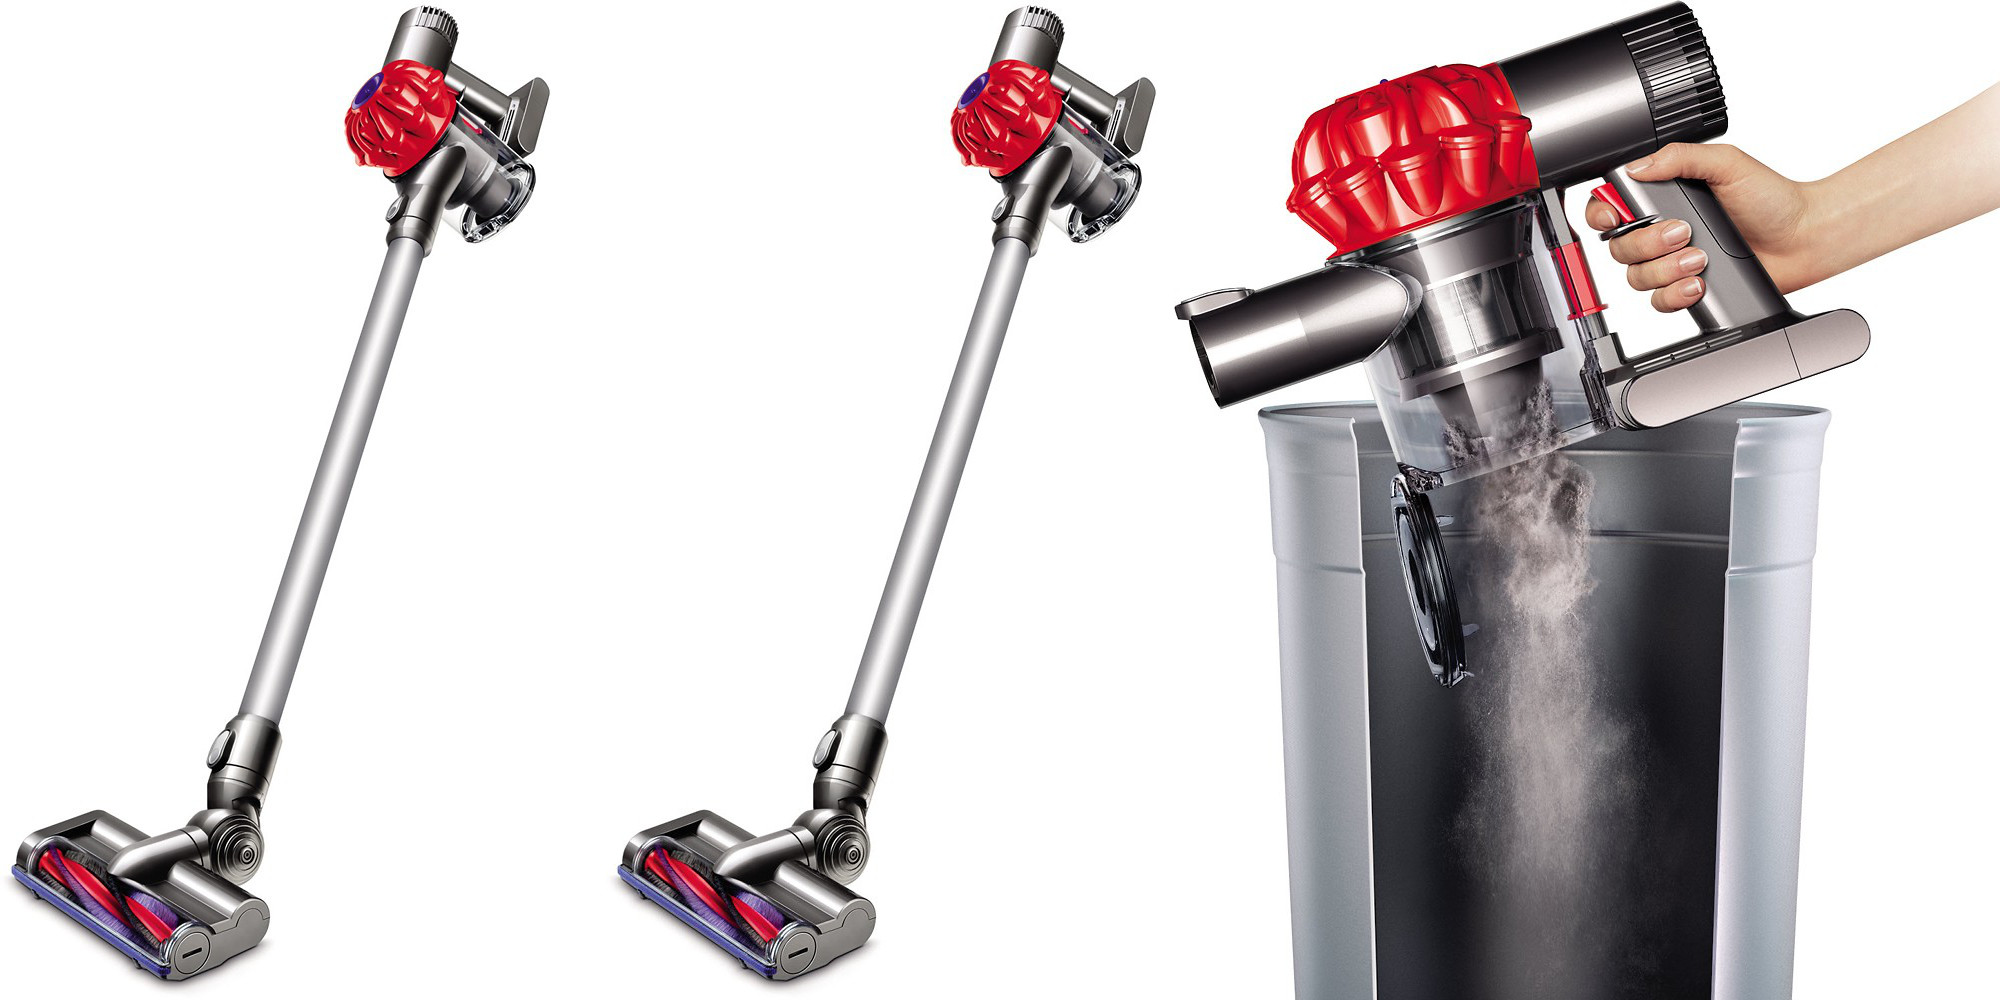 Dyson V6 Bagless Cordless Stick Vacuum Now 200 Shipped At